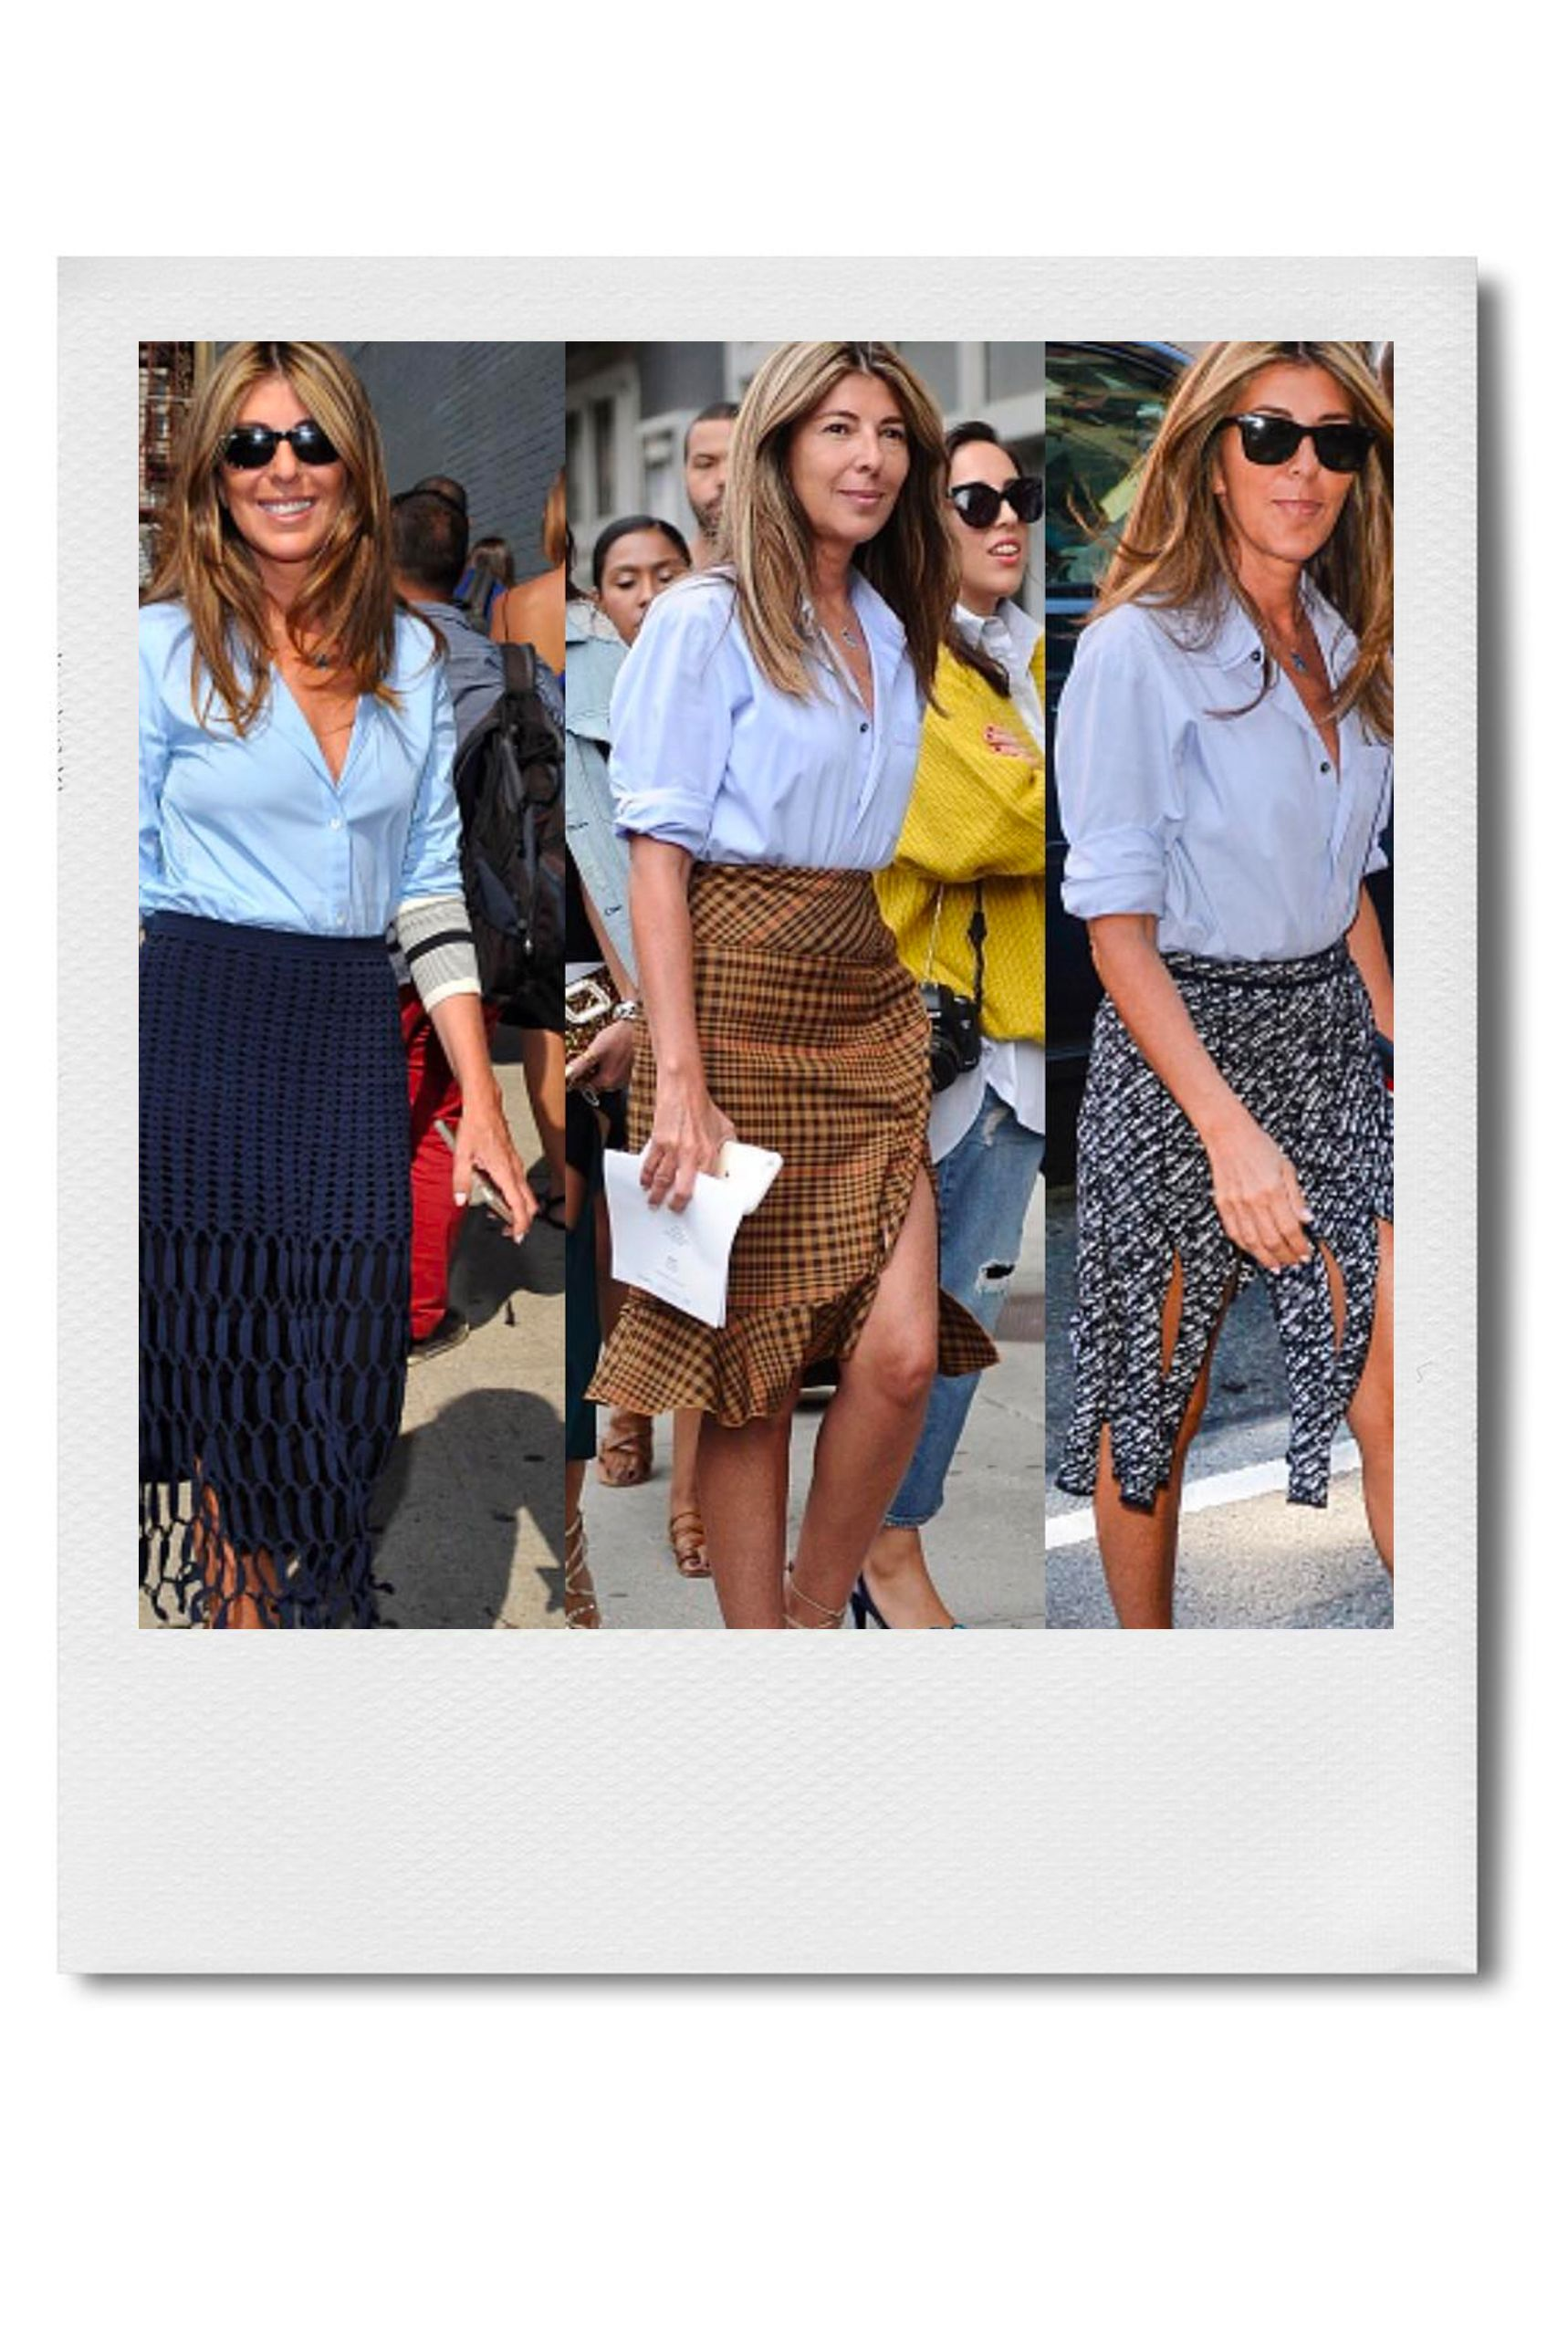 """Nina Garcia, Editor in Chief of ELLE Magazine """"I love color for the summer. My go-to office piece is a dress, worn with flat sandals—I'll change into high heels for the evening to dress it up.  Another work outfit formula I revert to a lot during warm weather is a white, black, or blue button-down shirt with an embellished skirt. If I'm going straight from the office to a dinner, I might switch out the shirt to something dressier—like a silk blouse—or add a jacket. This summer, I'm also looking forward to accessorizing with some fun, colorful pieces."""""""